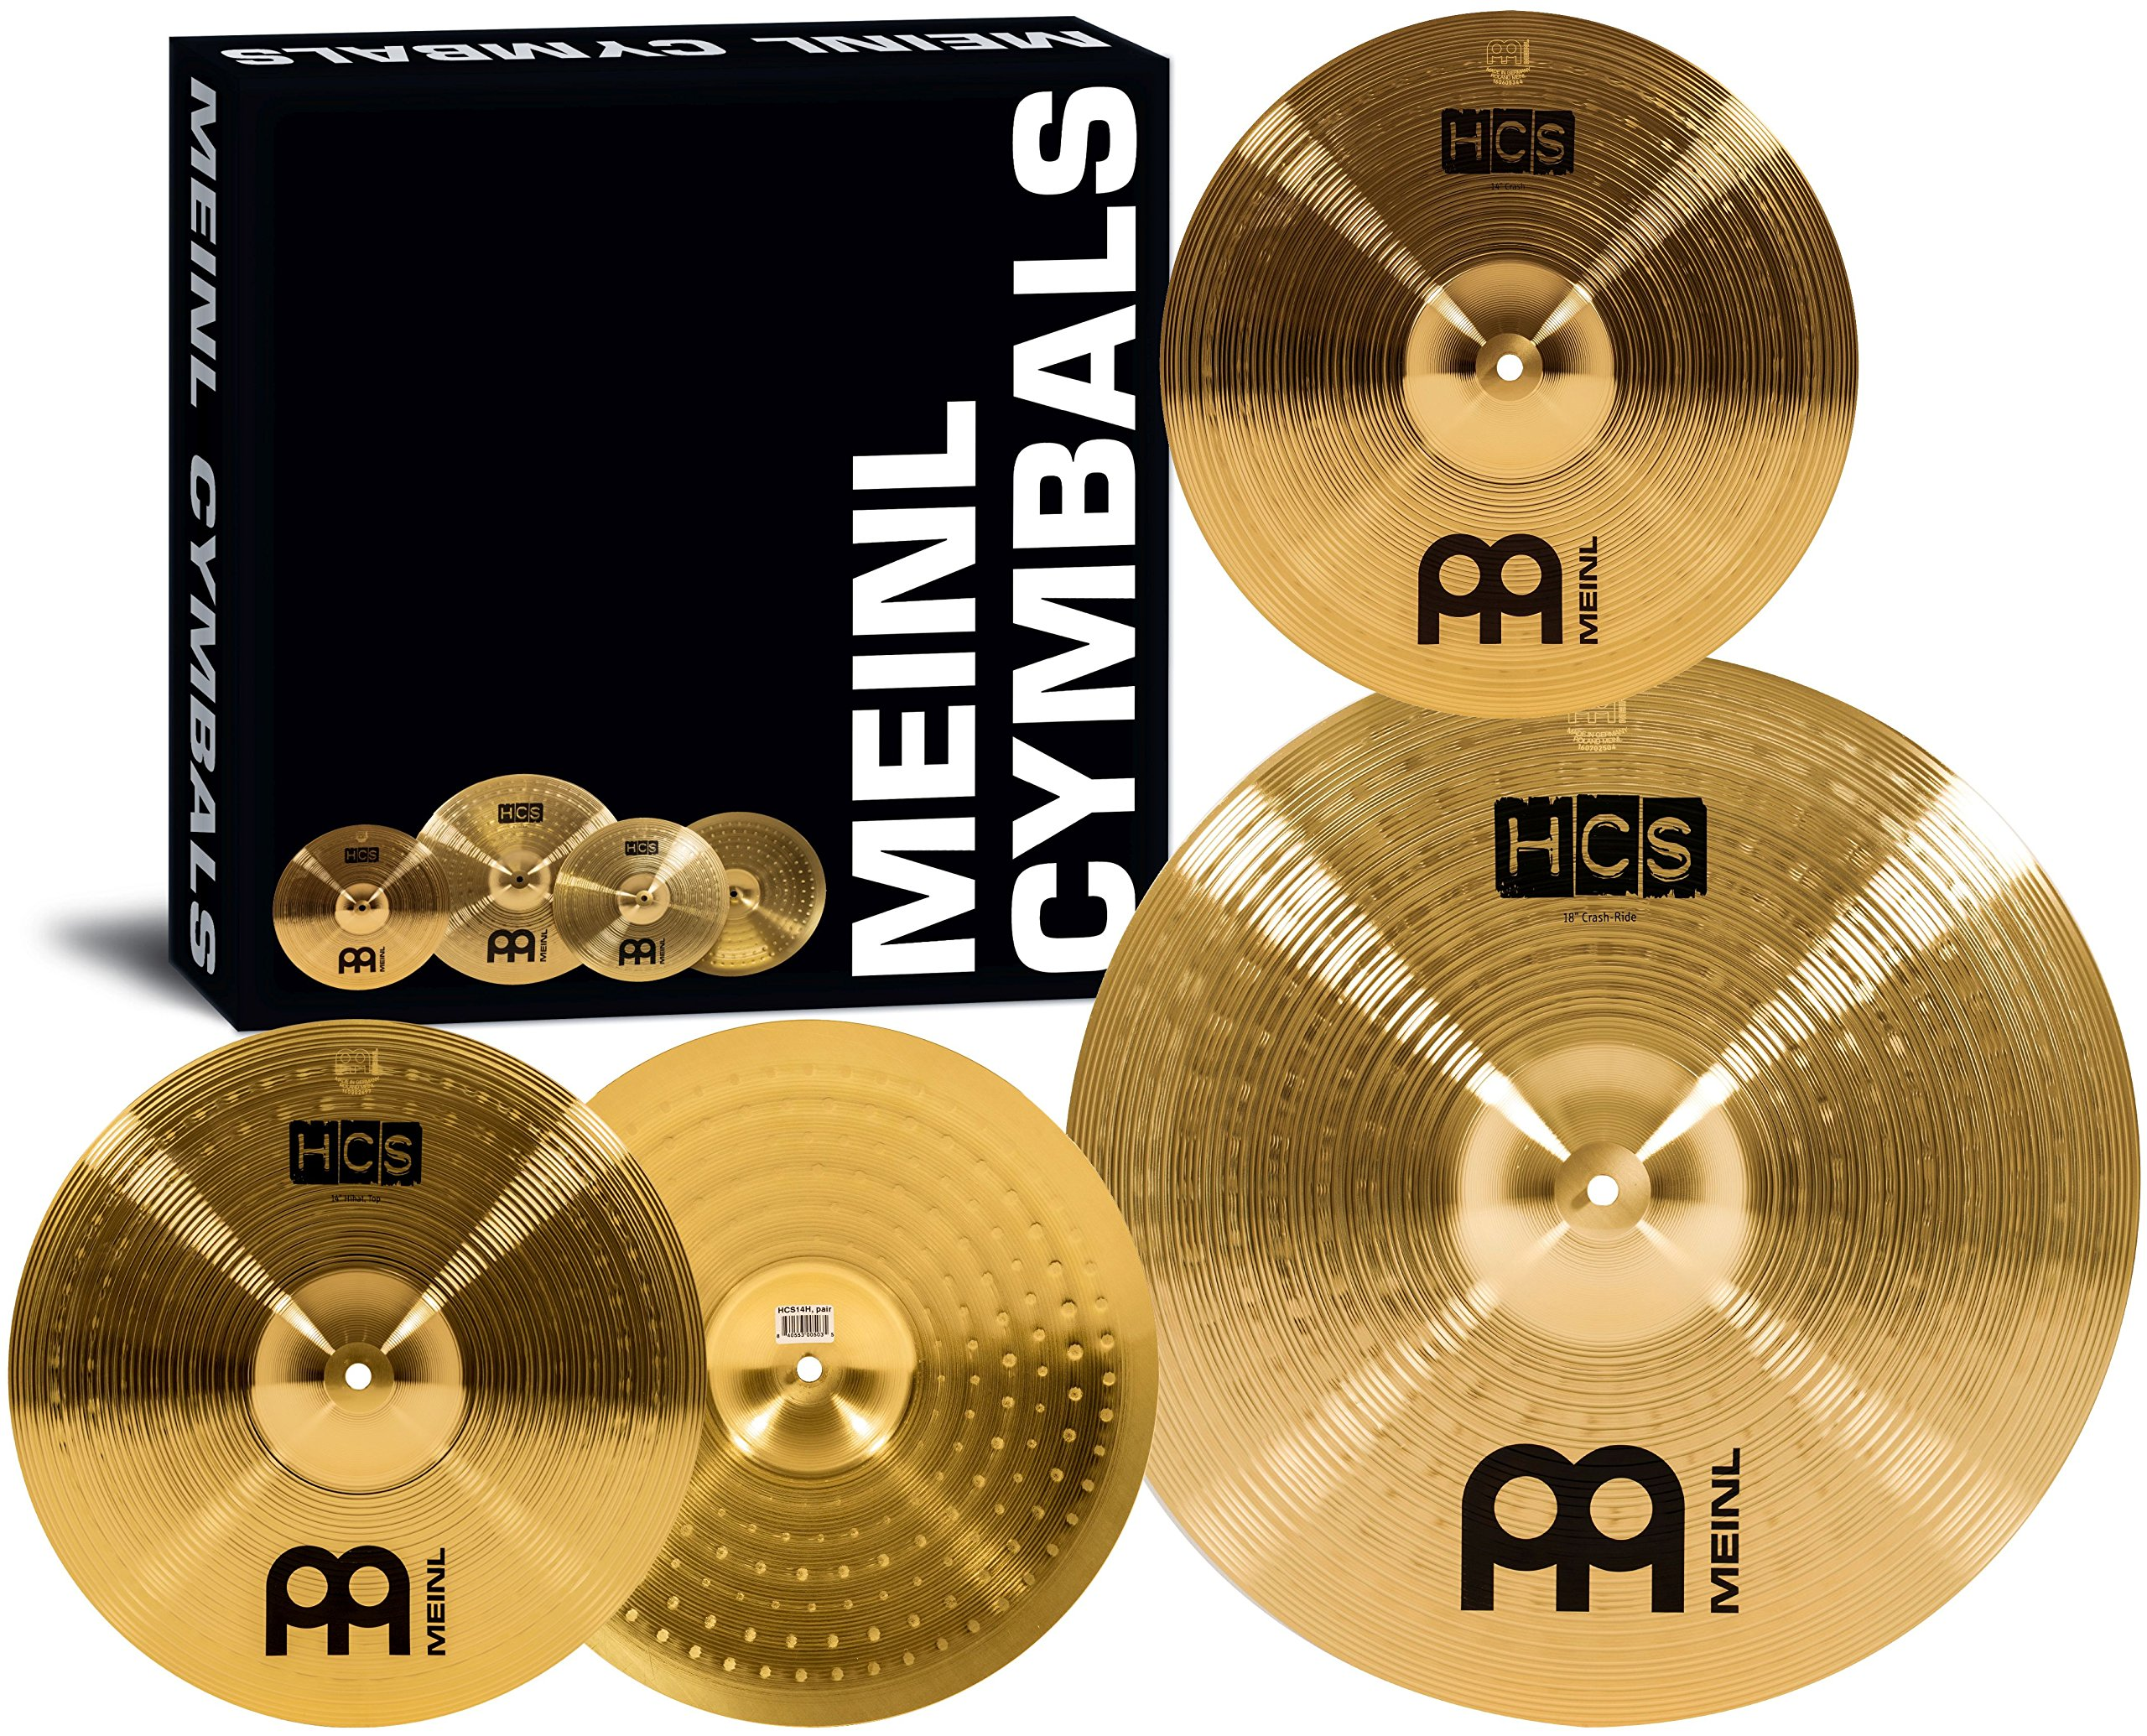 Meinl Cymbals HCS1418+14C HCS Cymbal Box Set Pack with 14-inch Hi Hat Pair, 18-inch Crash/Ride, and FREE 14-inch Crash (VIDEO)